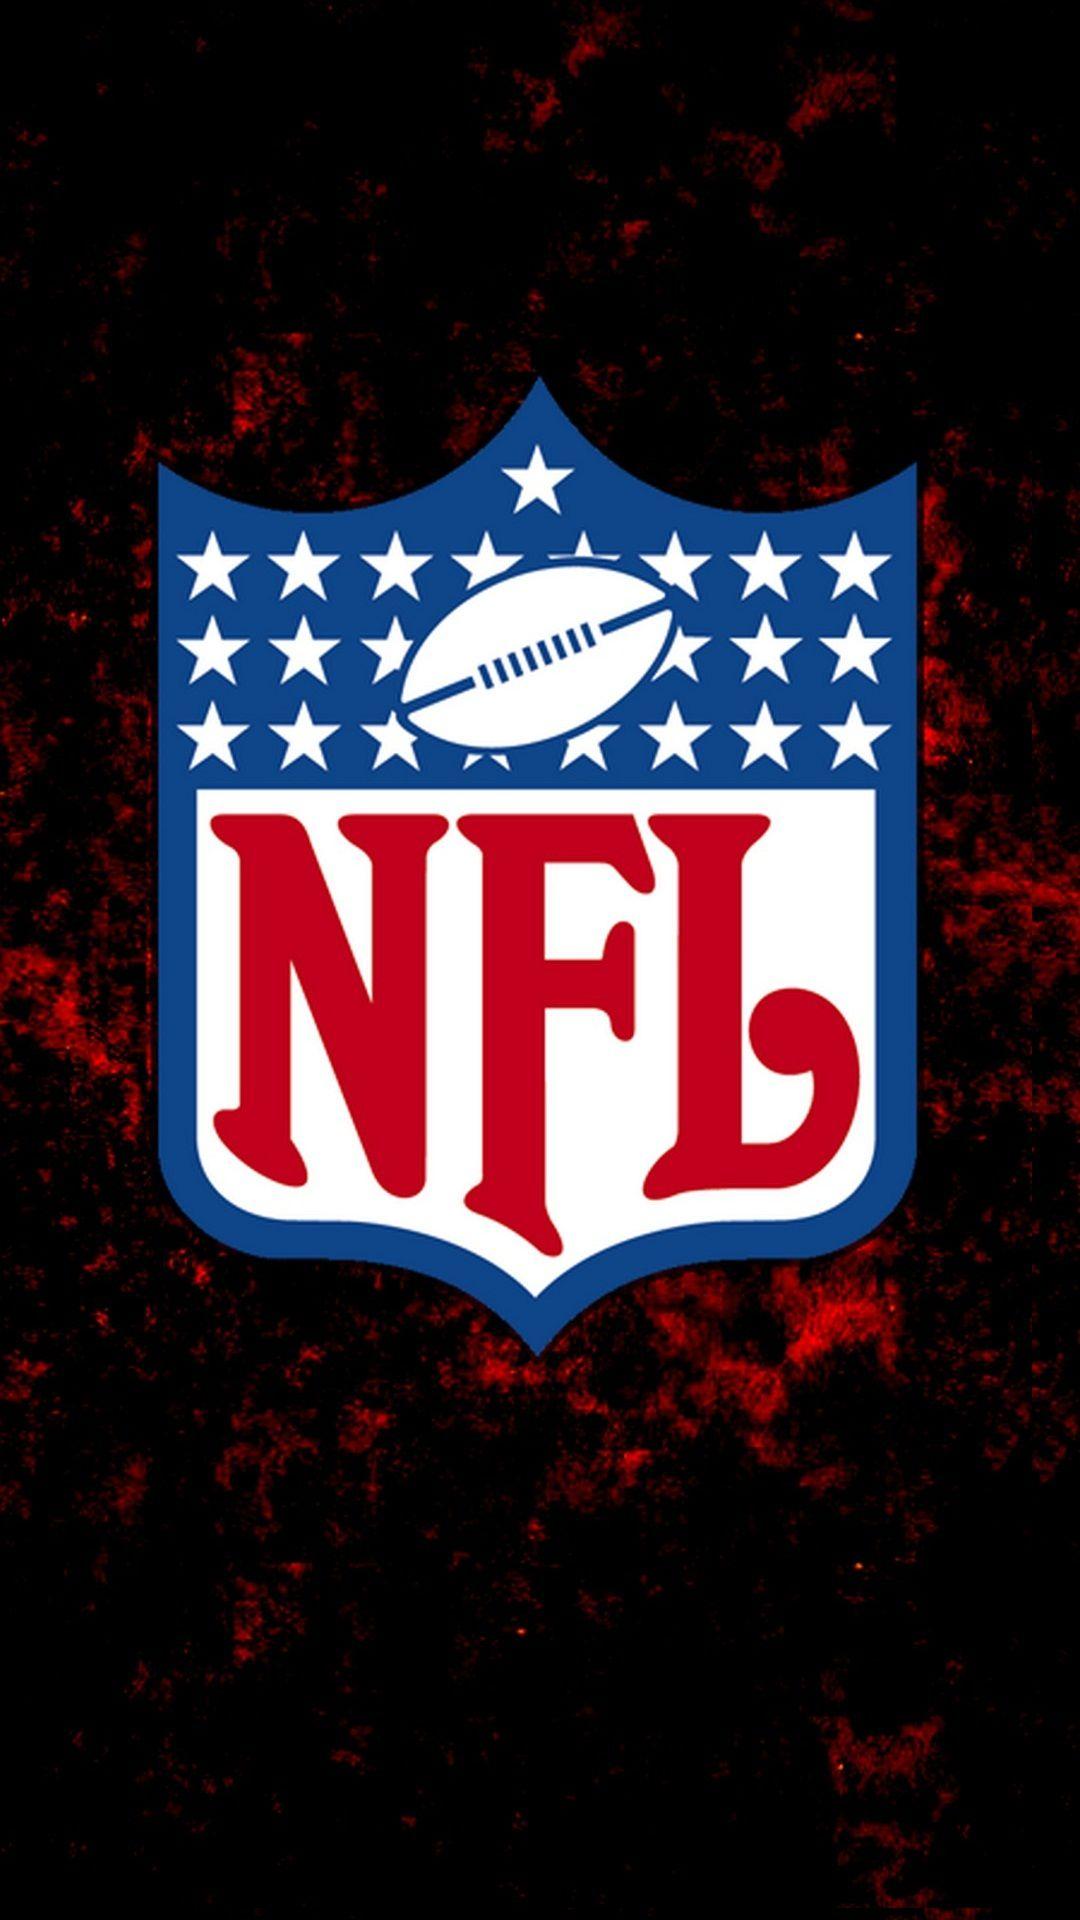 Wallpaper Of Nfl Posted By Samantha Tremblay